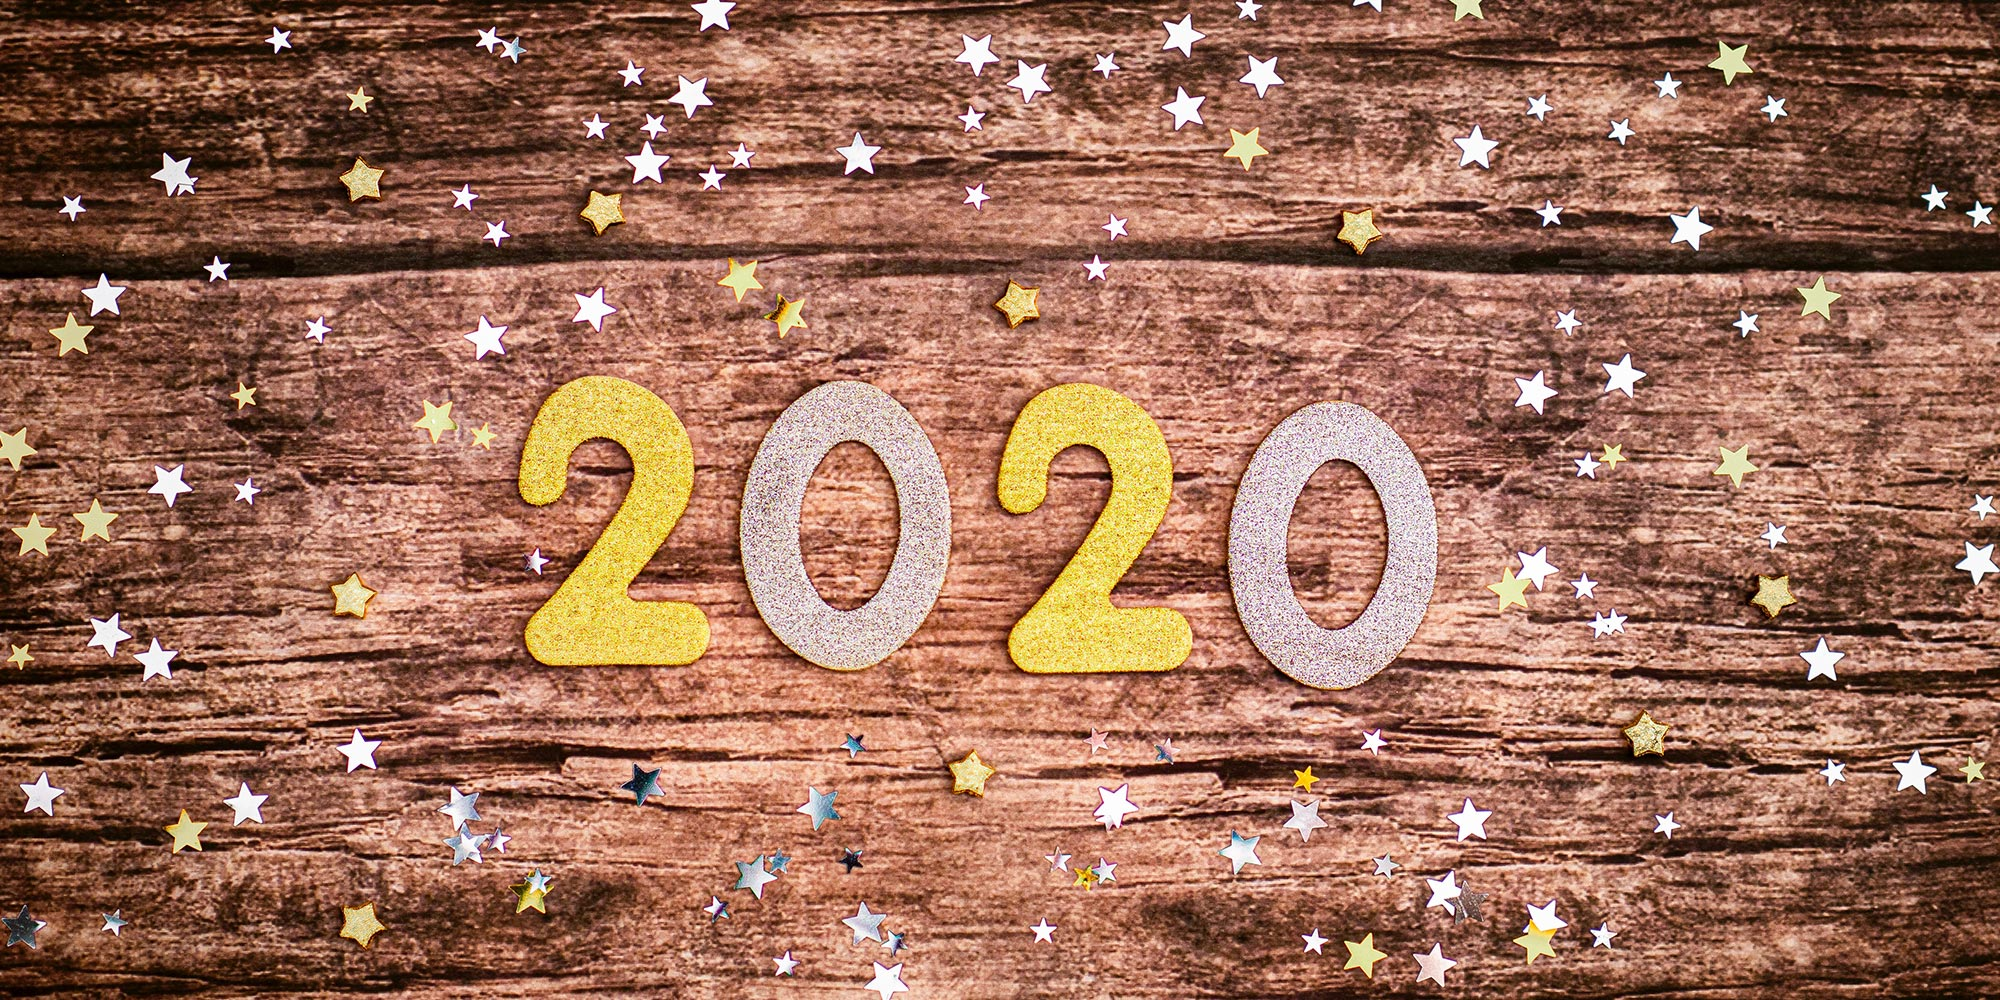 A New Year's Resolution to improve your dental health in 2020